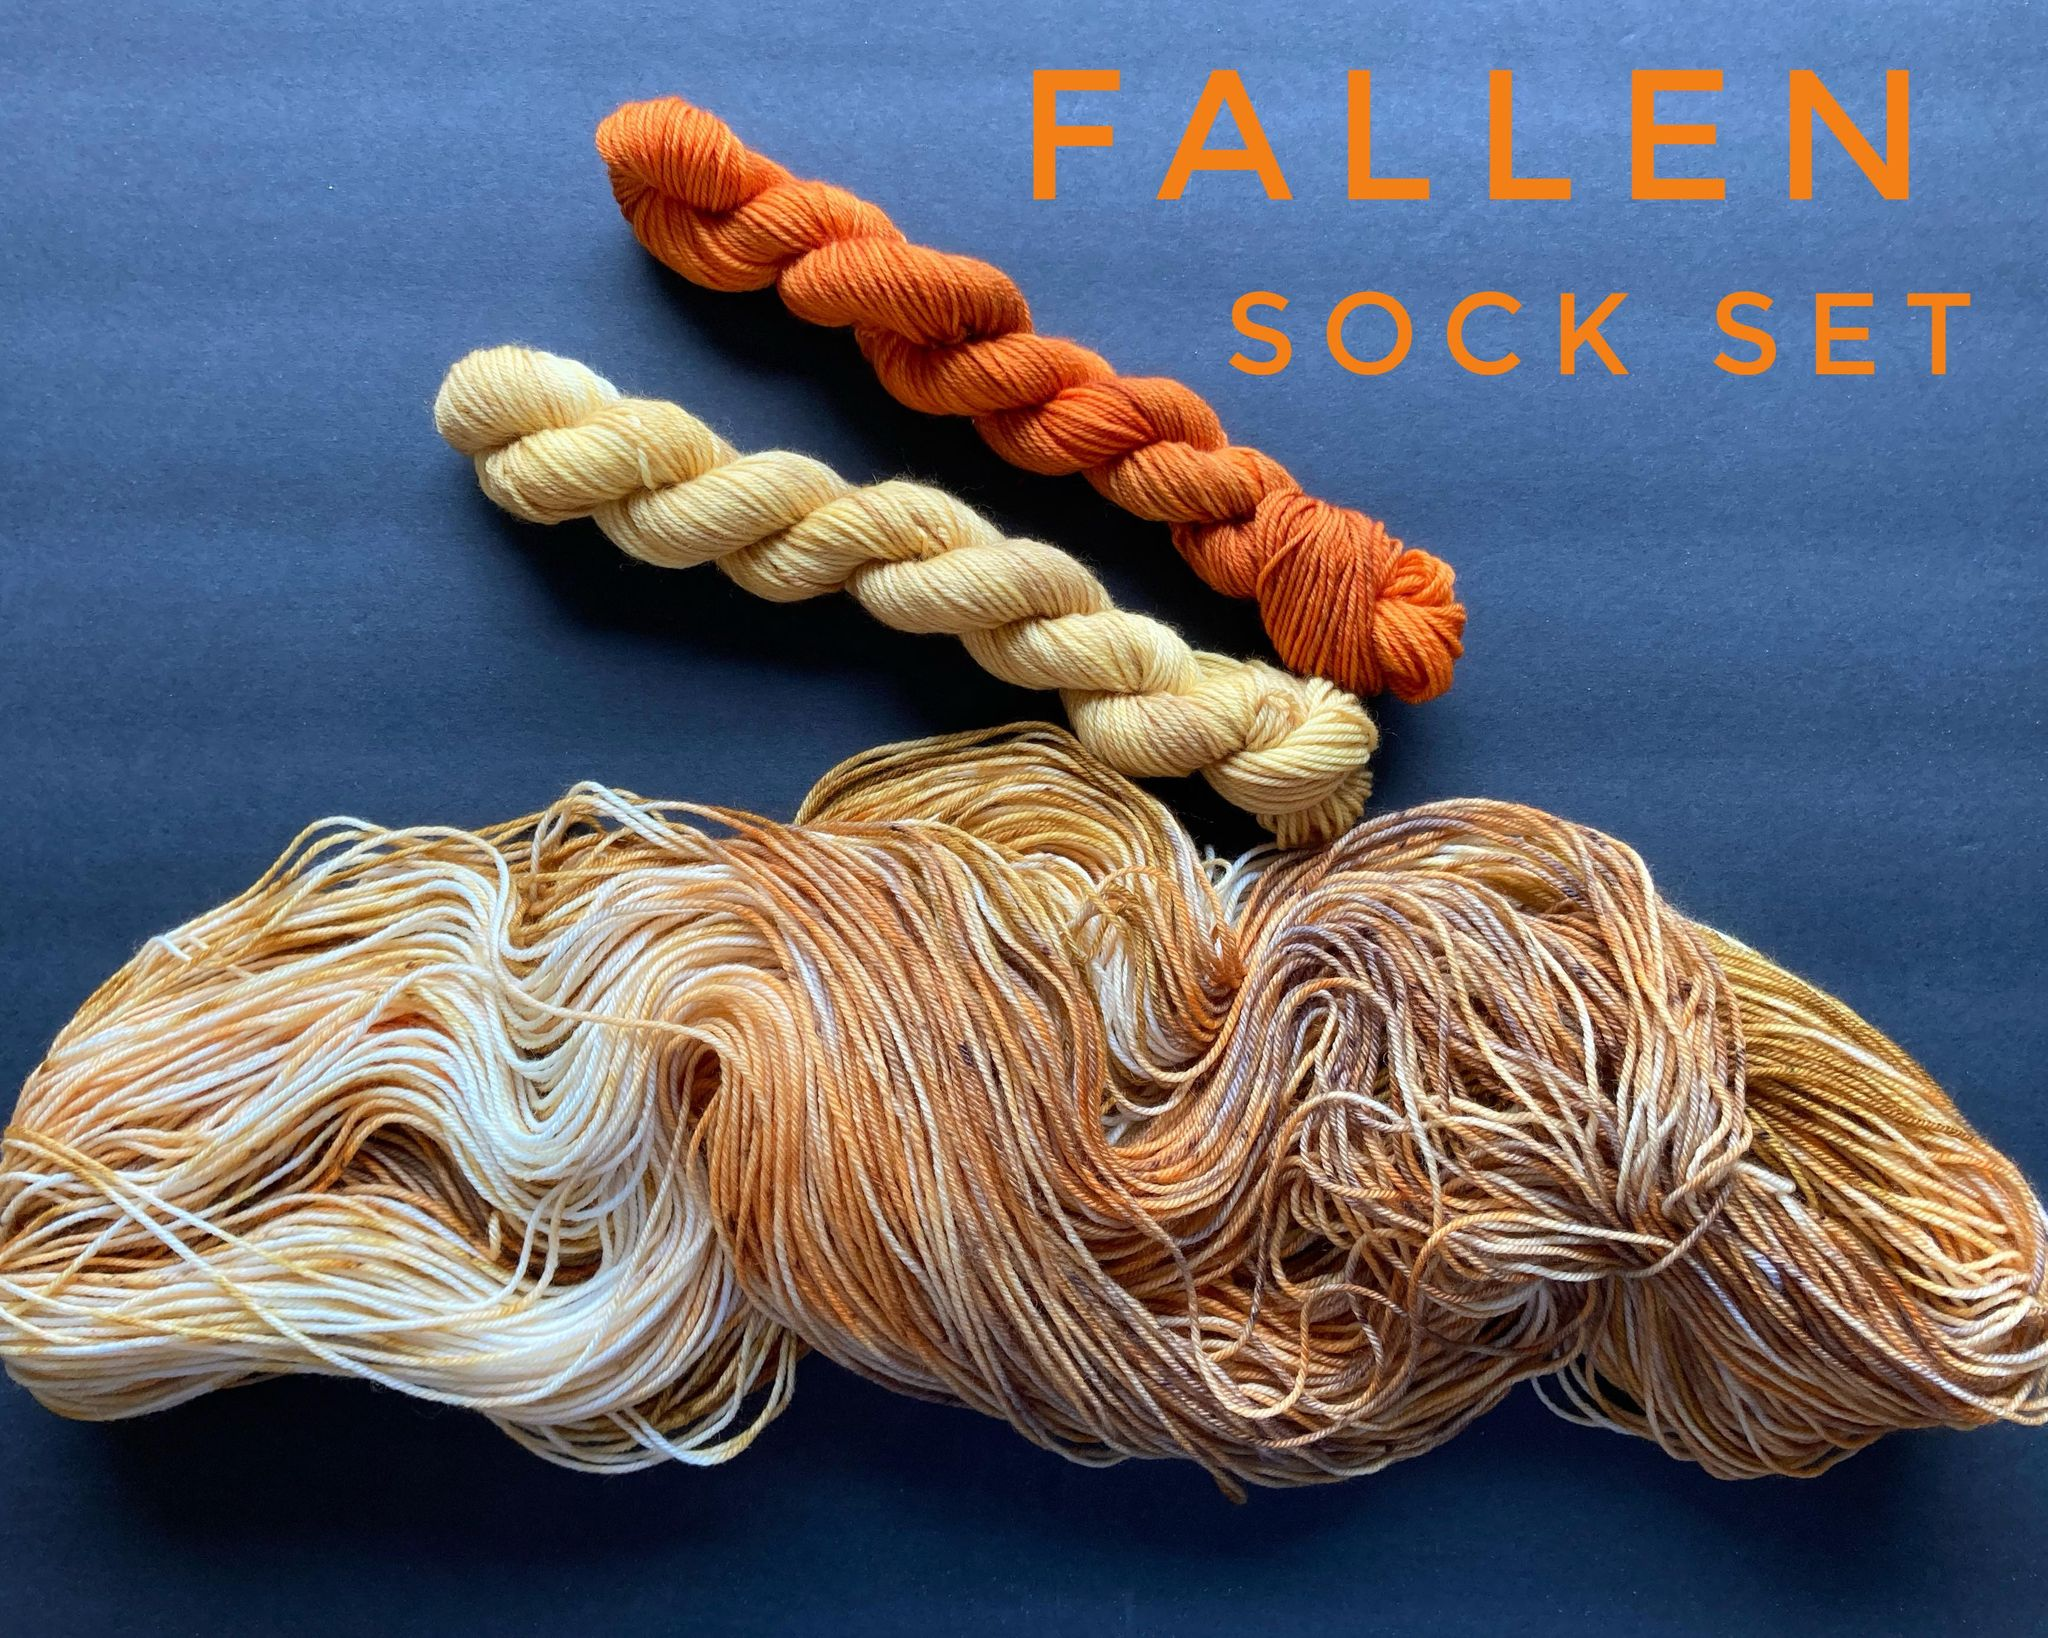 Fallen Sock Set Double